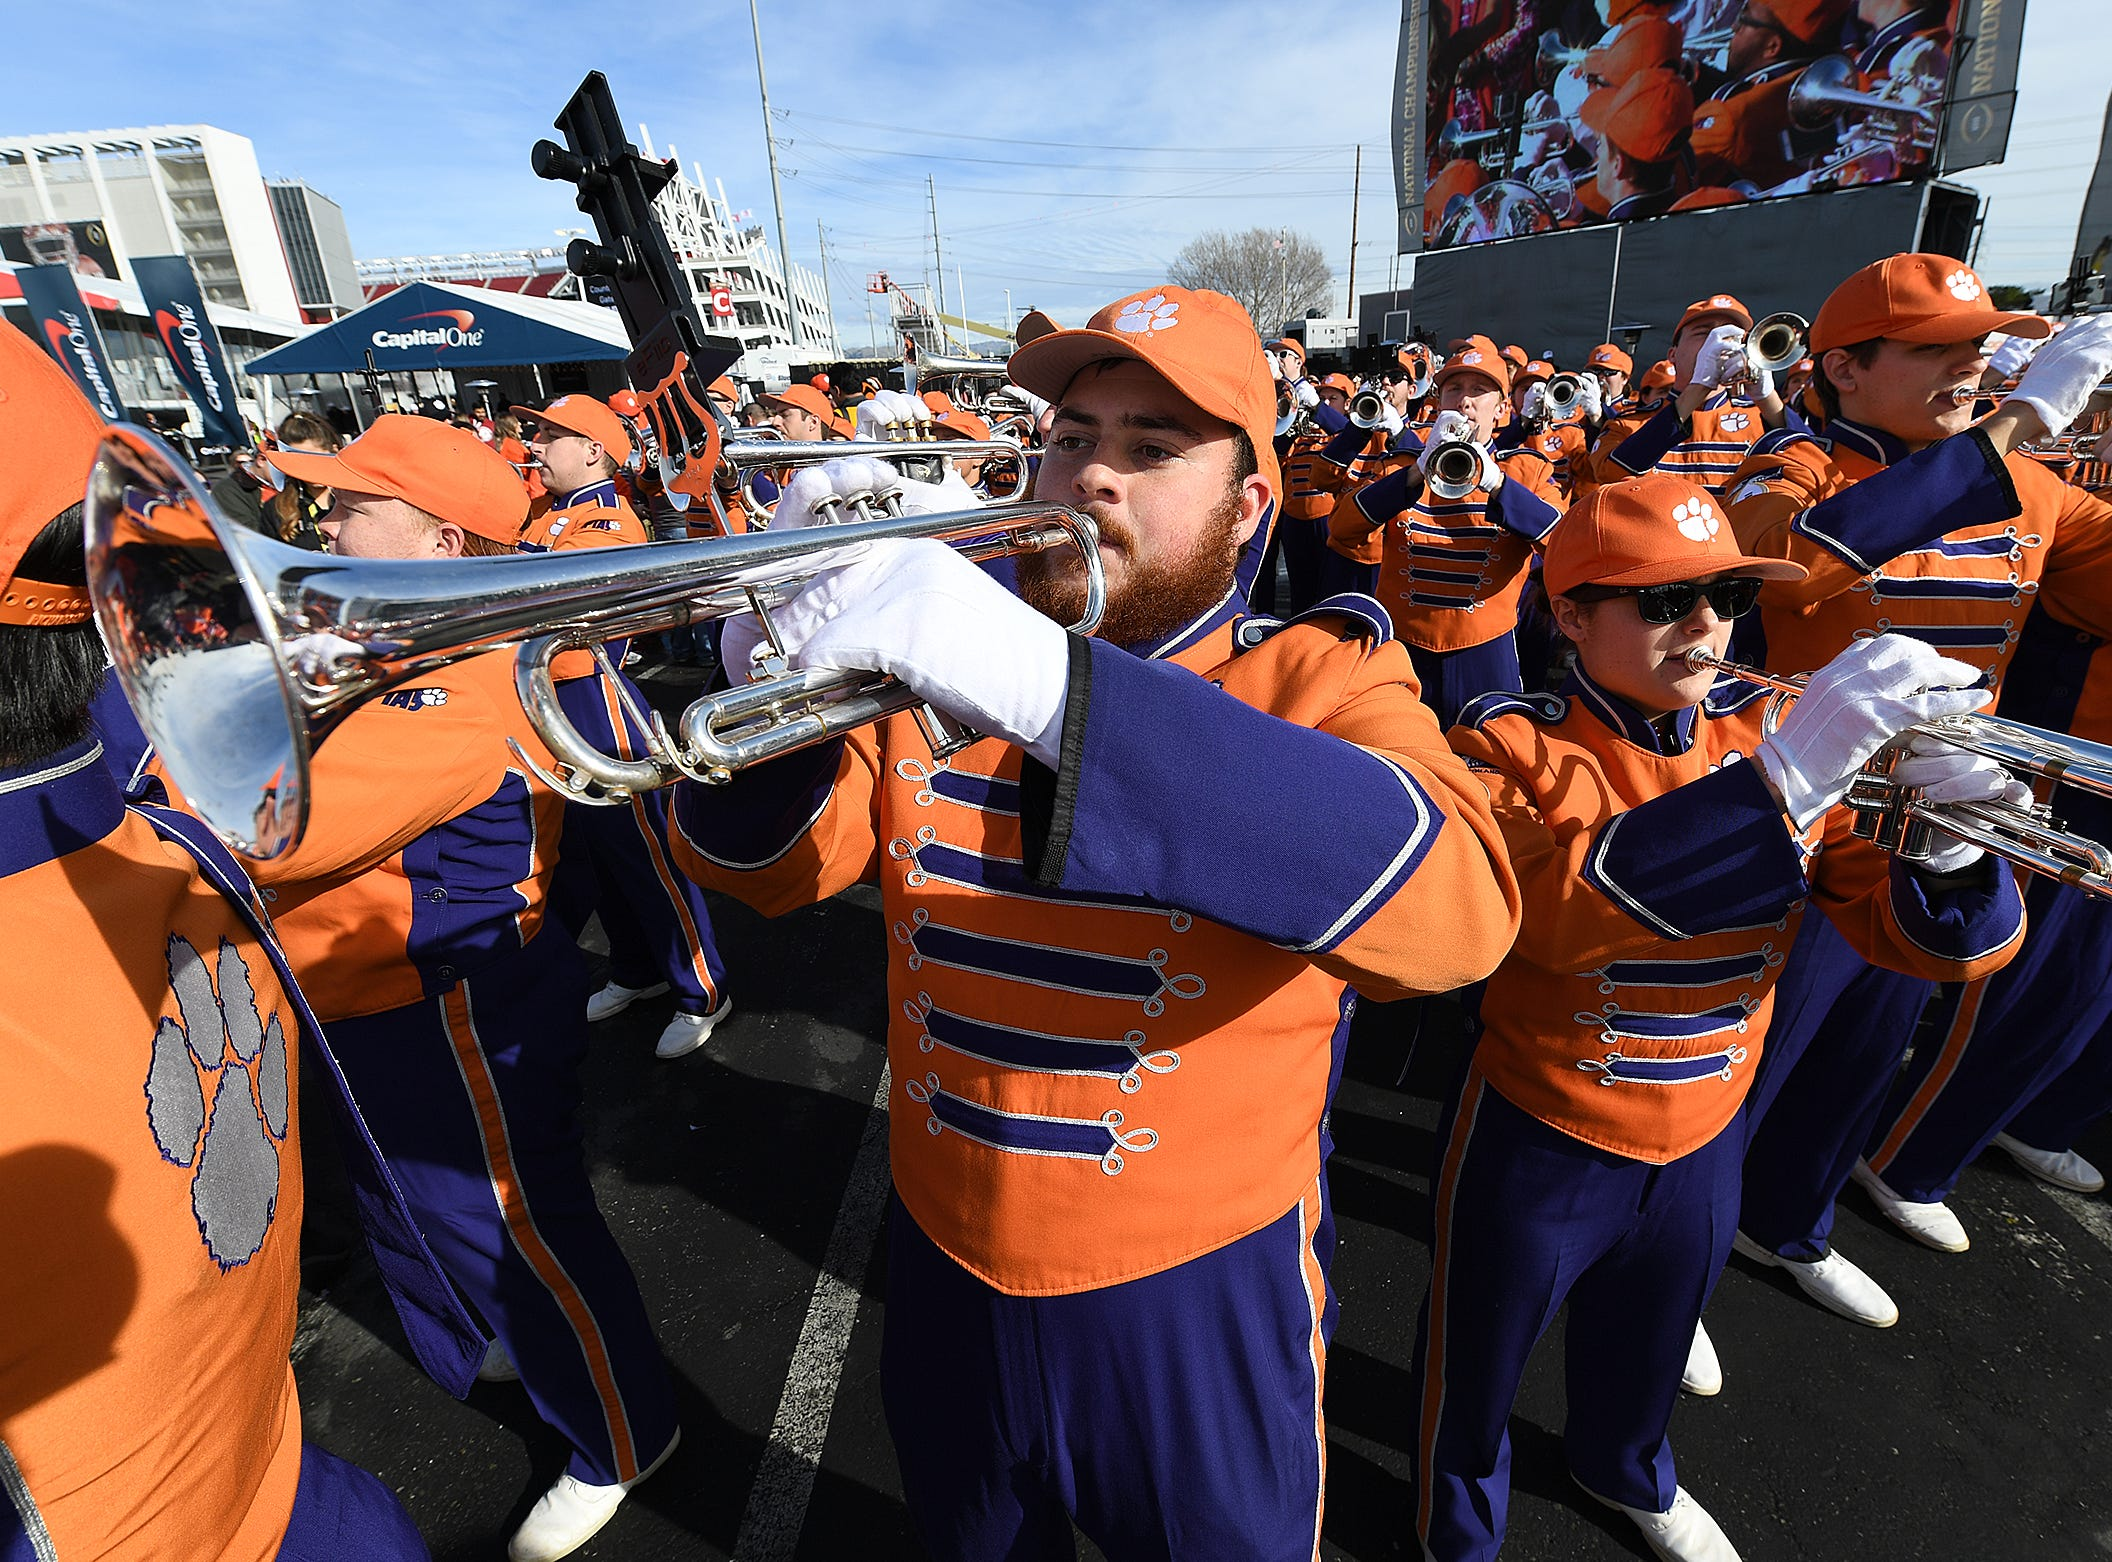 Clemson's band during the College Football Championship Playoff Tailgate outside Levi's Stadium in Santa Clara, CA Monday, January 7, 2019.